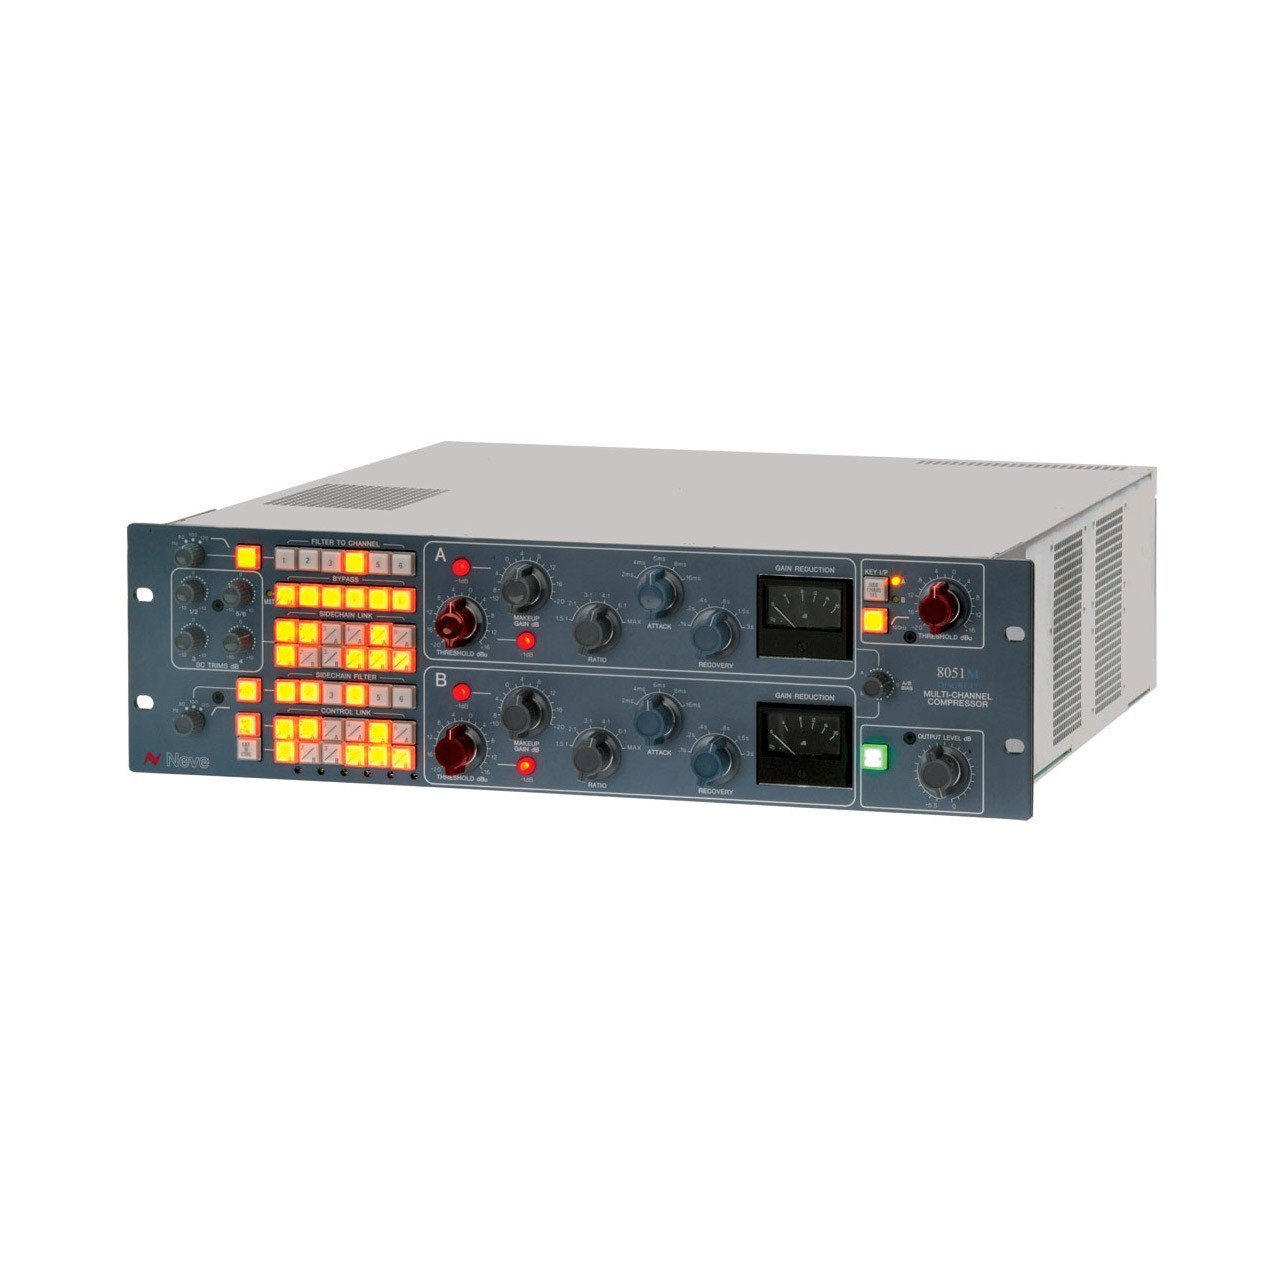 Compressors/Limiters - Neve AMS 8051 Surround Compressor